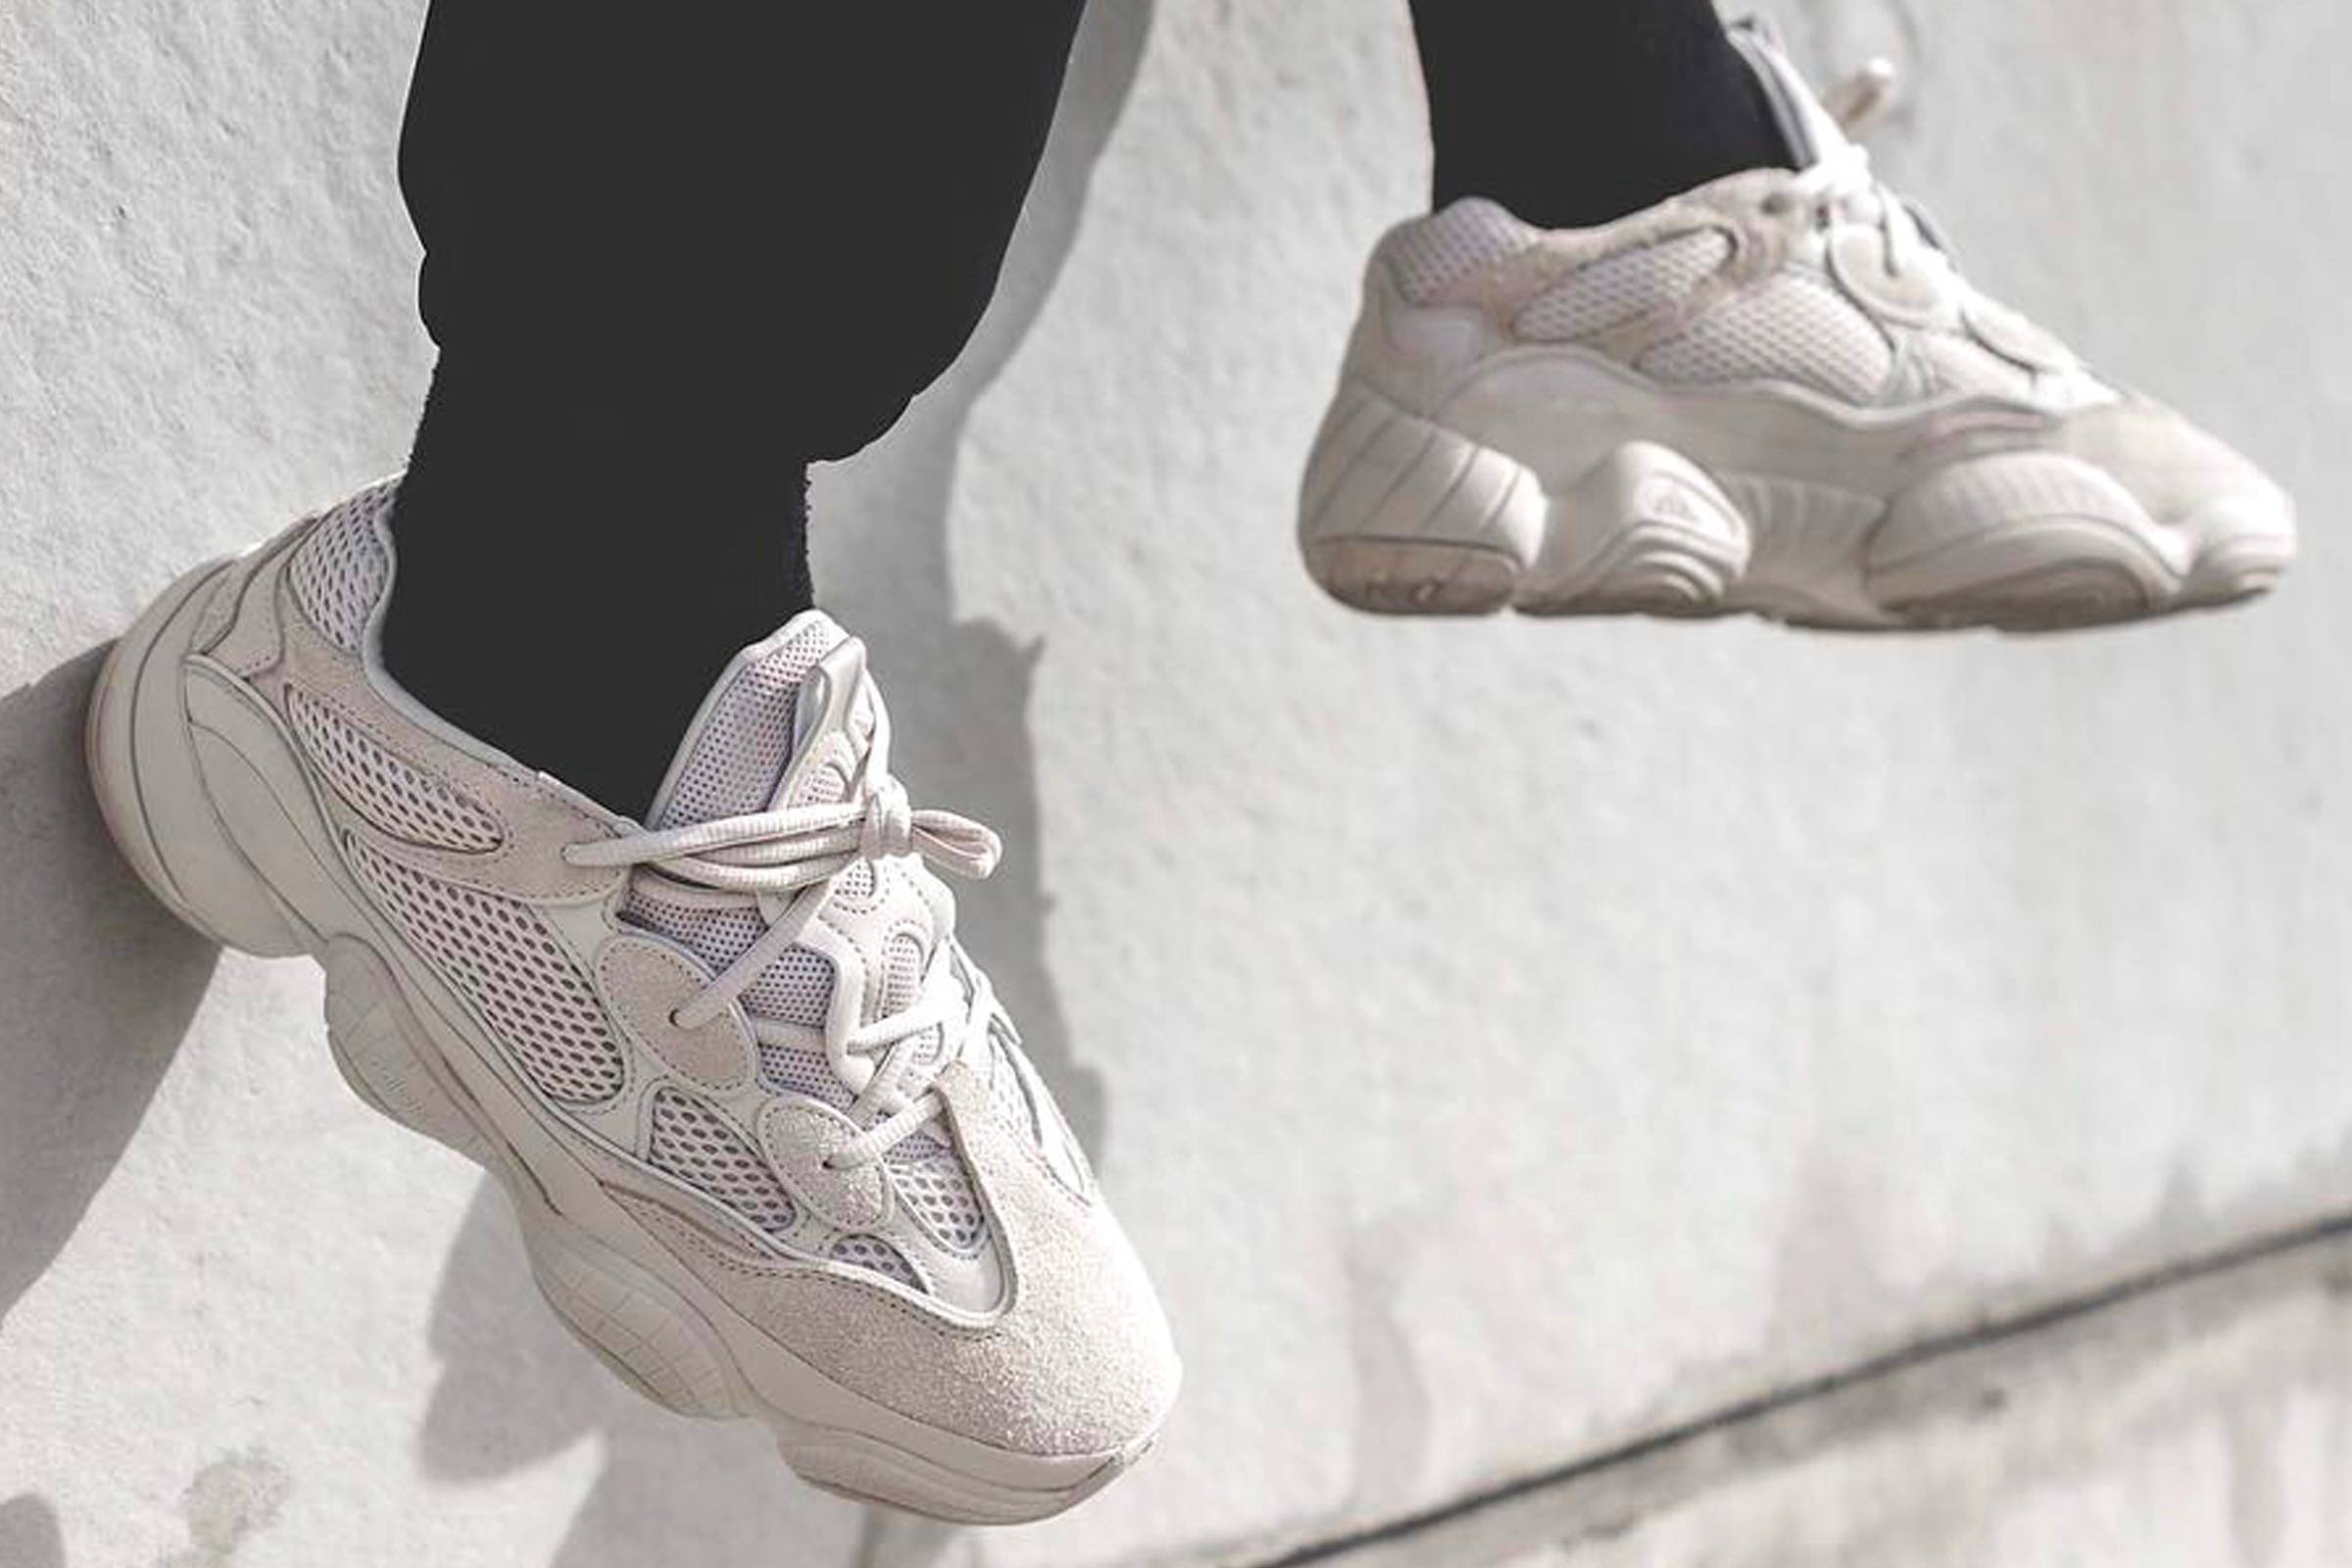 ba0a5fbd63be4 The Yeezy Desert Rat 500